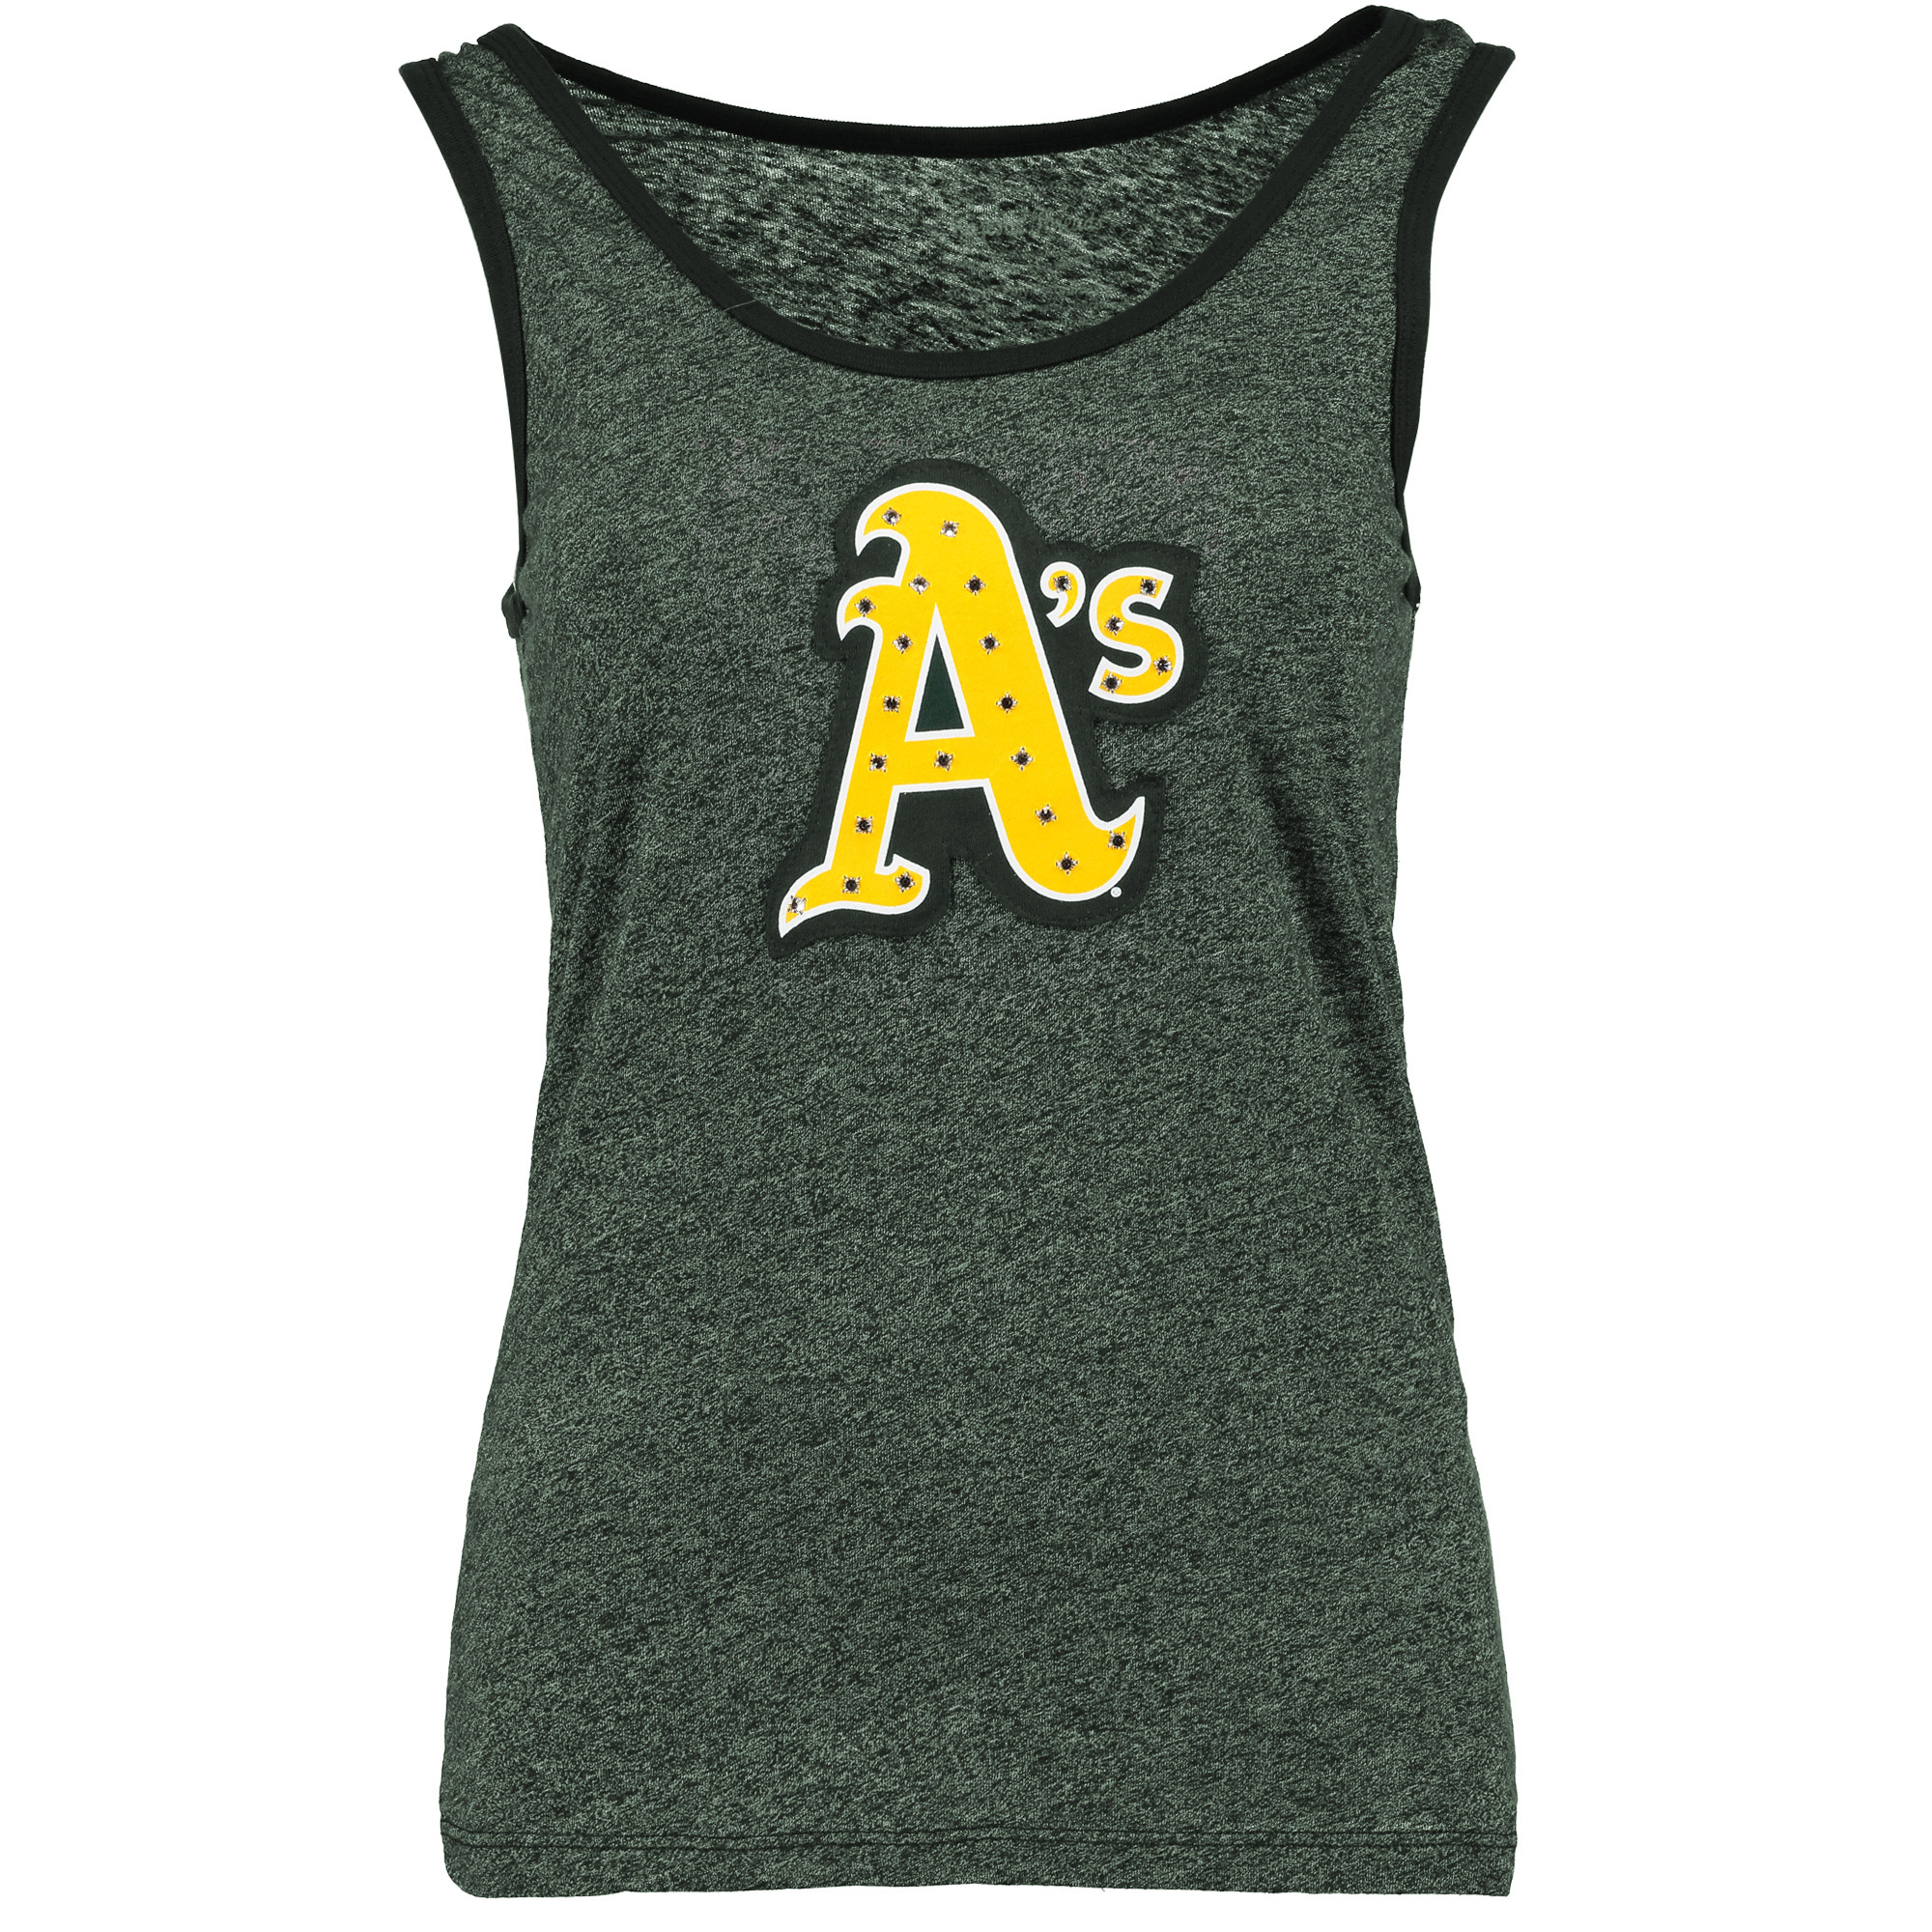 Oakland Athletics Majestic Threads Women's Tri-Blend Tank Top with Bling Applique - Green